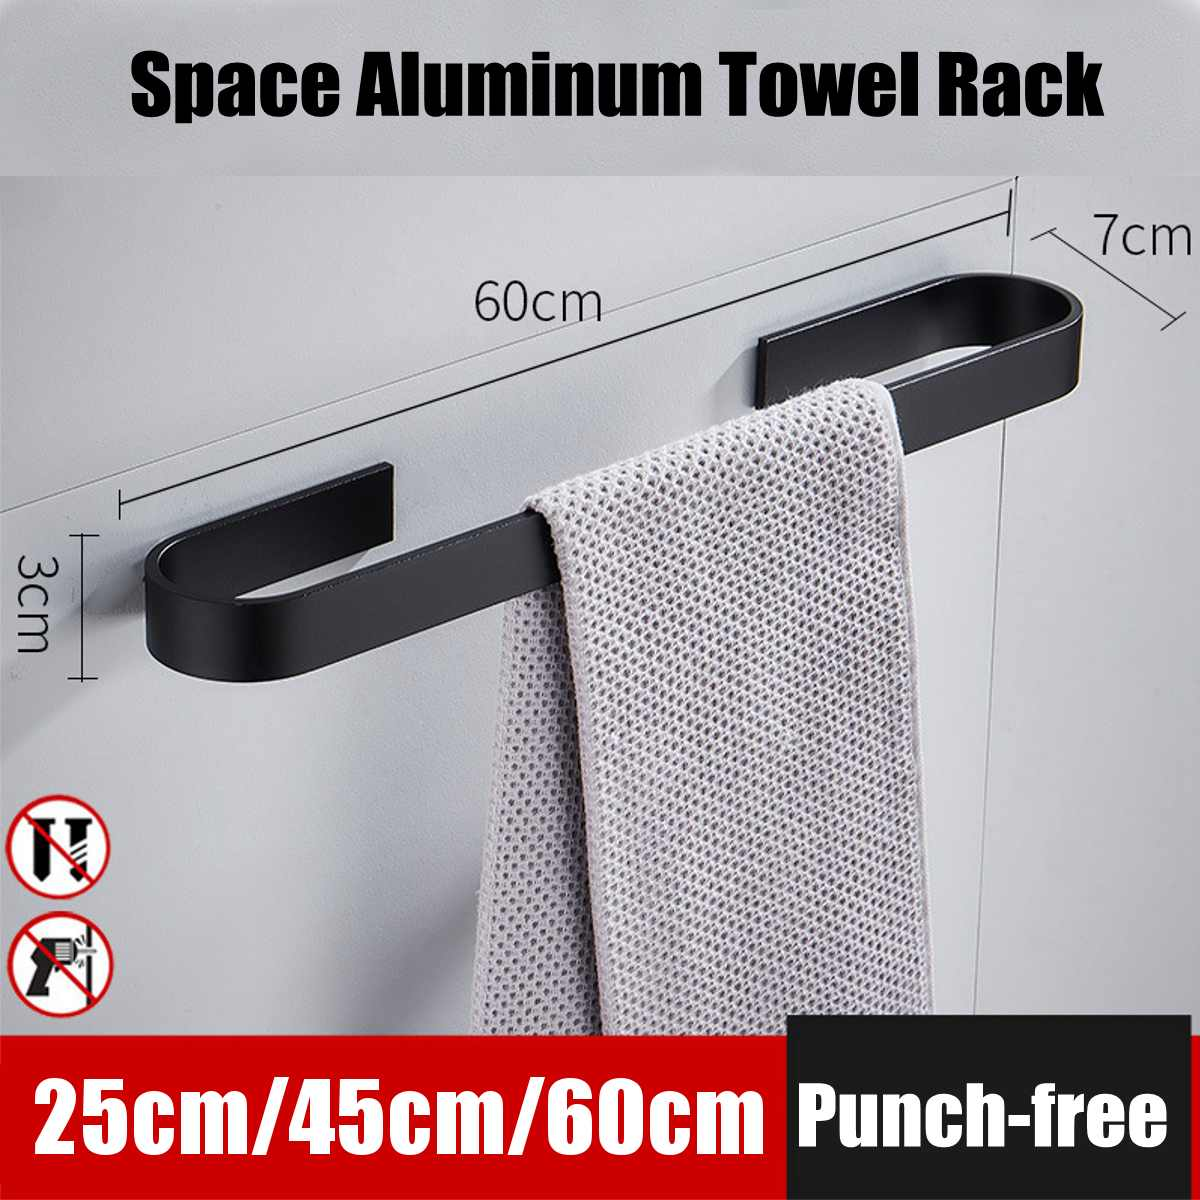 25/45/60cm Towel Bar Black Space Aluminum Wall Mounted Single Washroom Towel Rack Hanging Holder Accessories